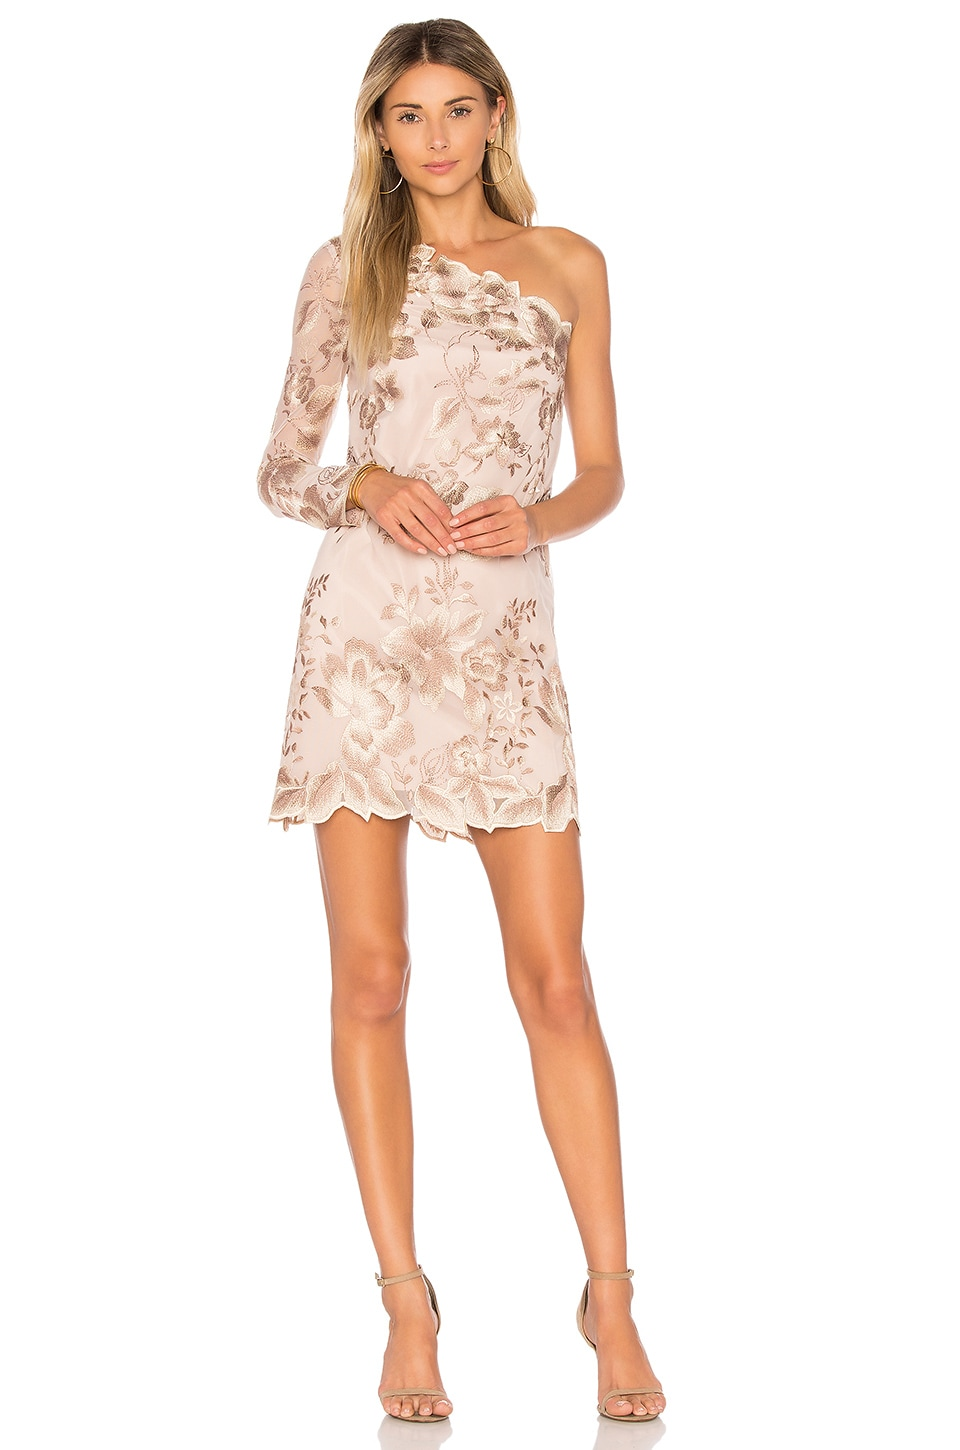 Free People Rosalie Embroidered Mini in Nude